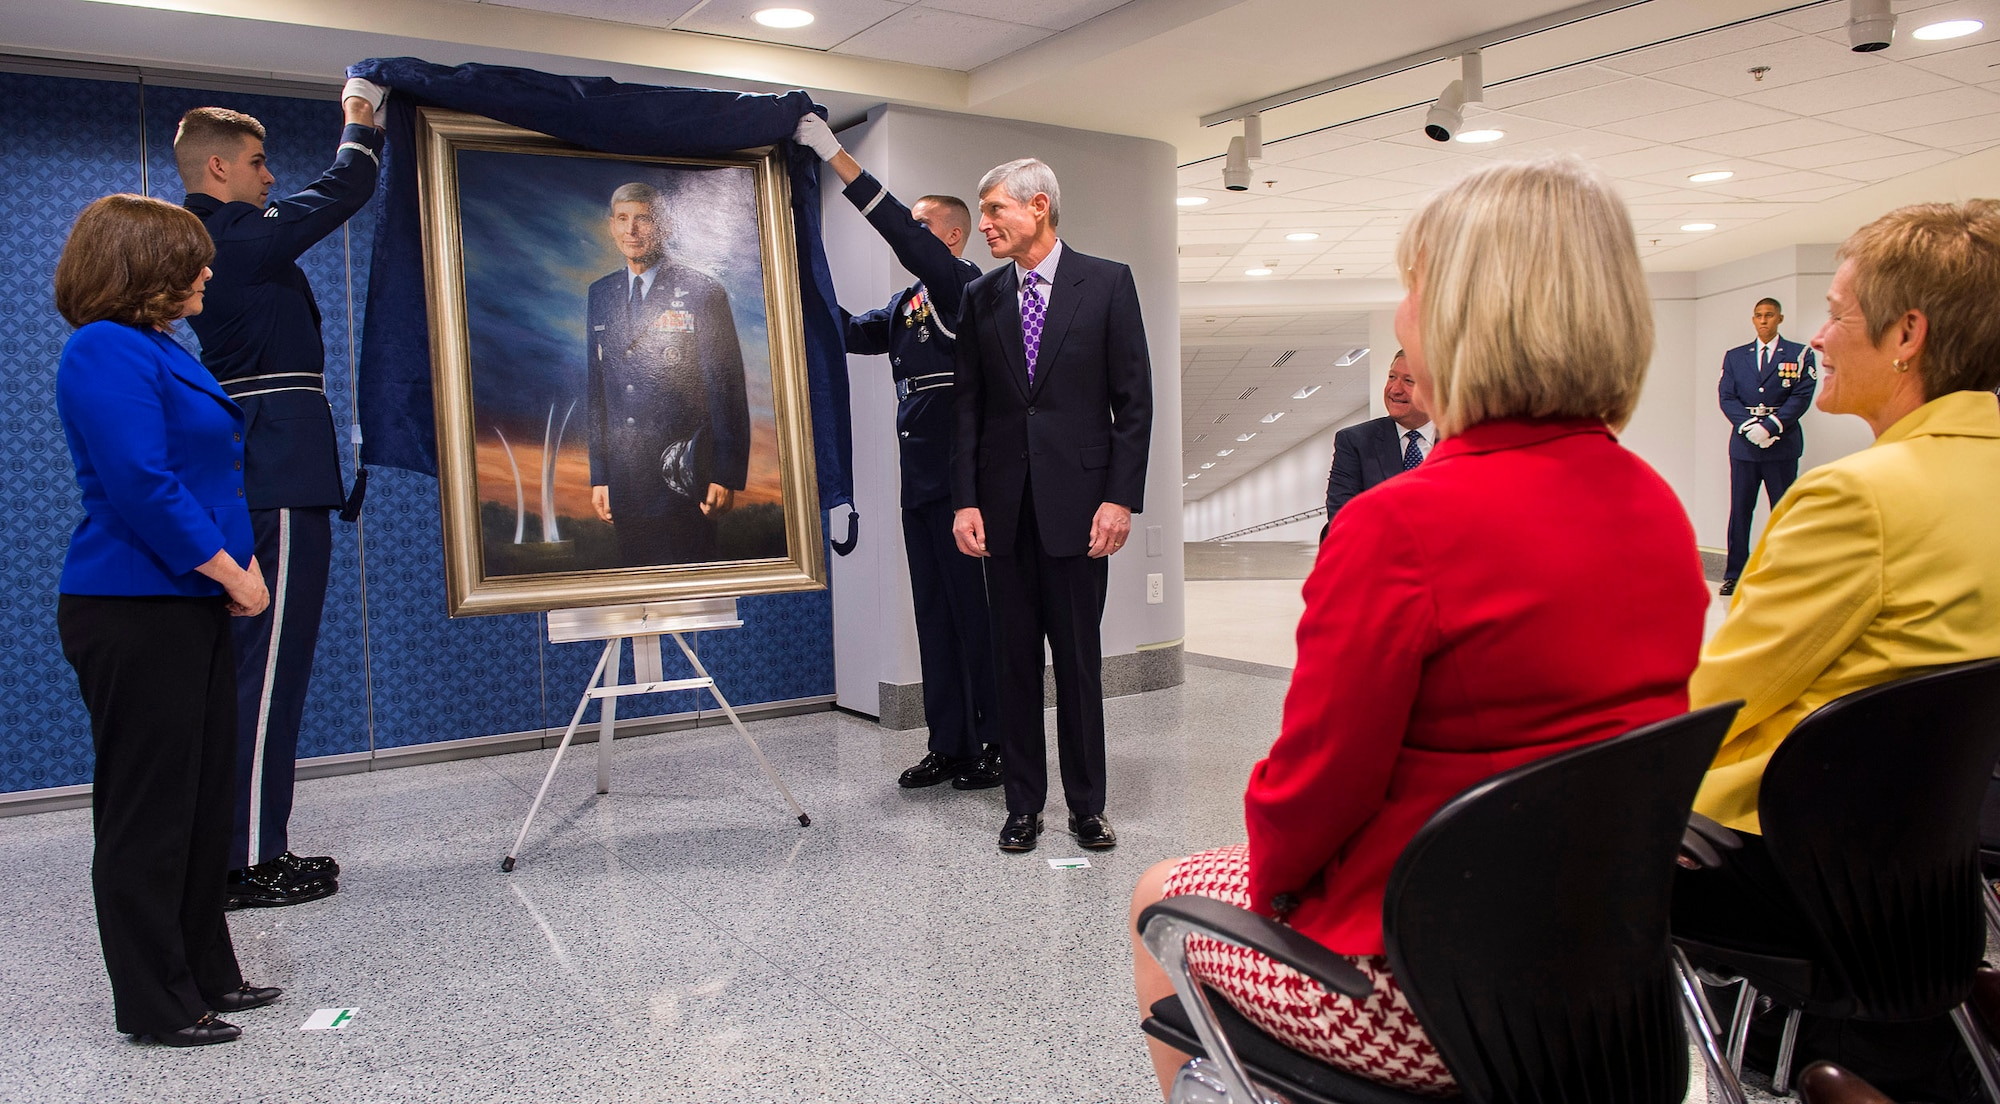 Retired Gen. Norton Schwartz and artist Michele Rushworth look on as the former chief of Staff of the Air Force's official portrait is unveiled in the Pentagon, Washington, D.C., on Jan. 8, 2013. The portrait will be on display in the Pentagon's Arnold Corridor alongside the portraits of the other former Air Force chiefs of staff. (U.S. Air Force photo/Jim Varhegyi)